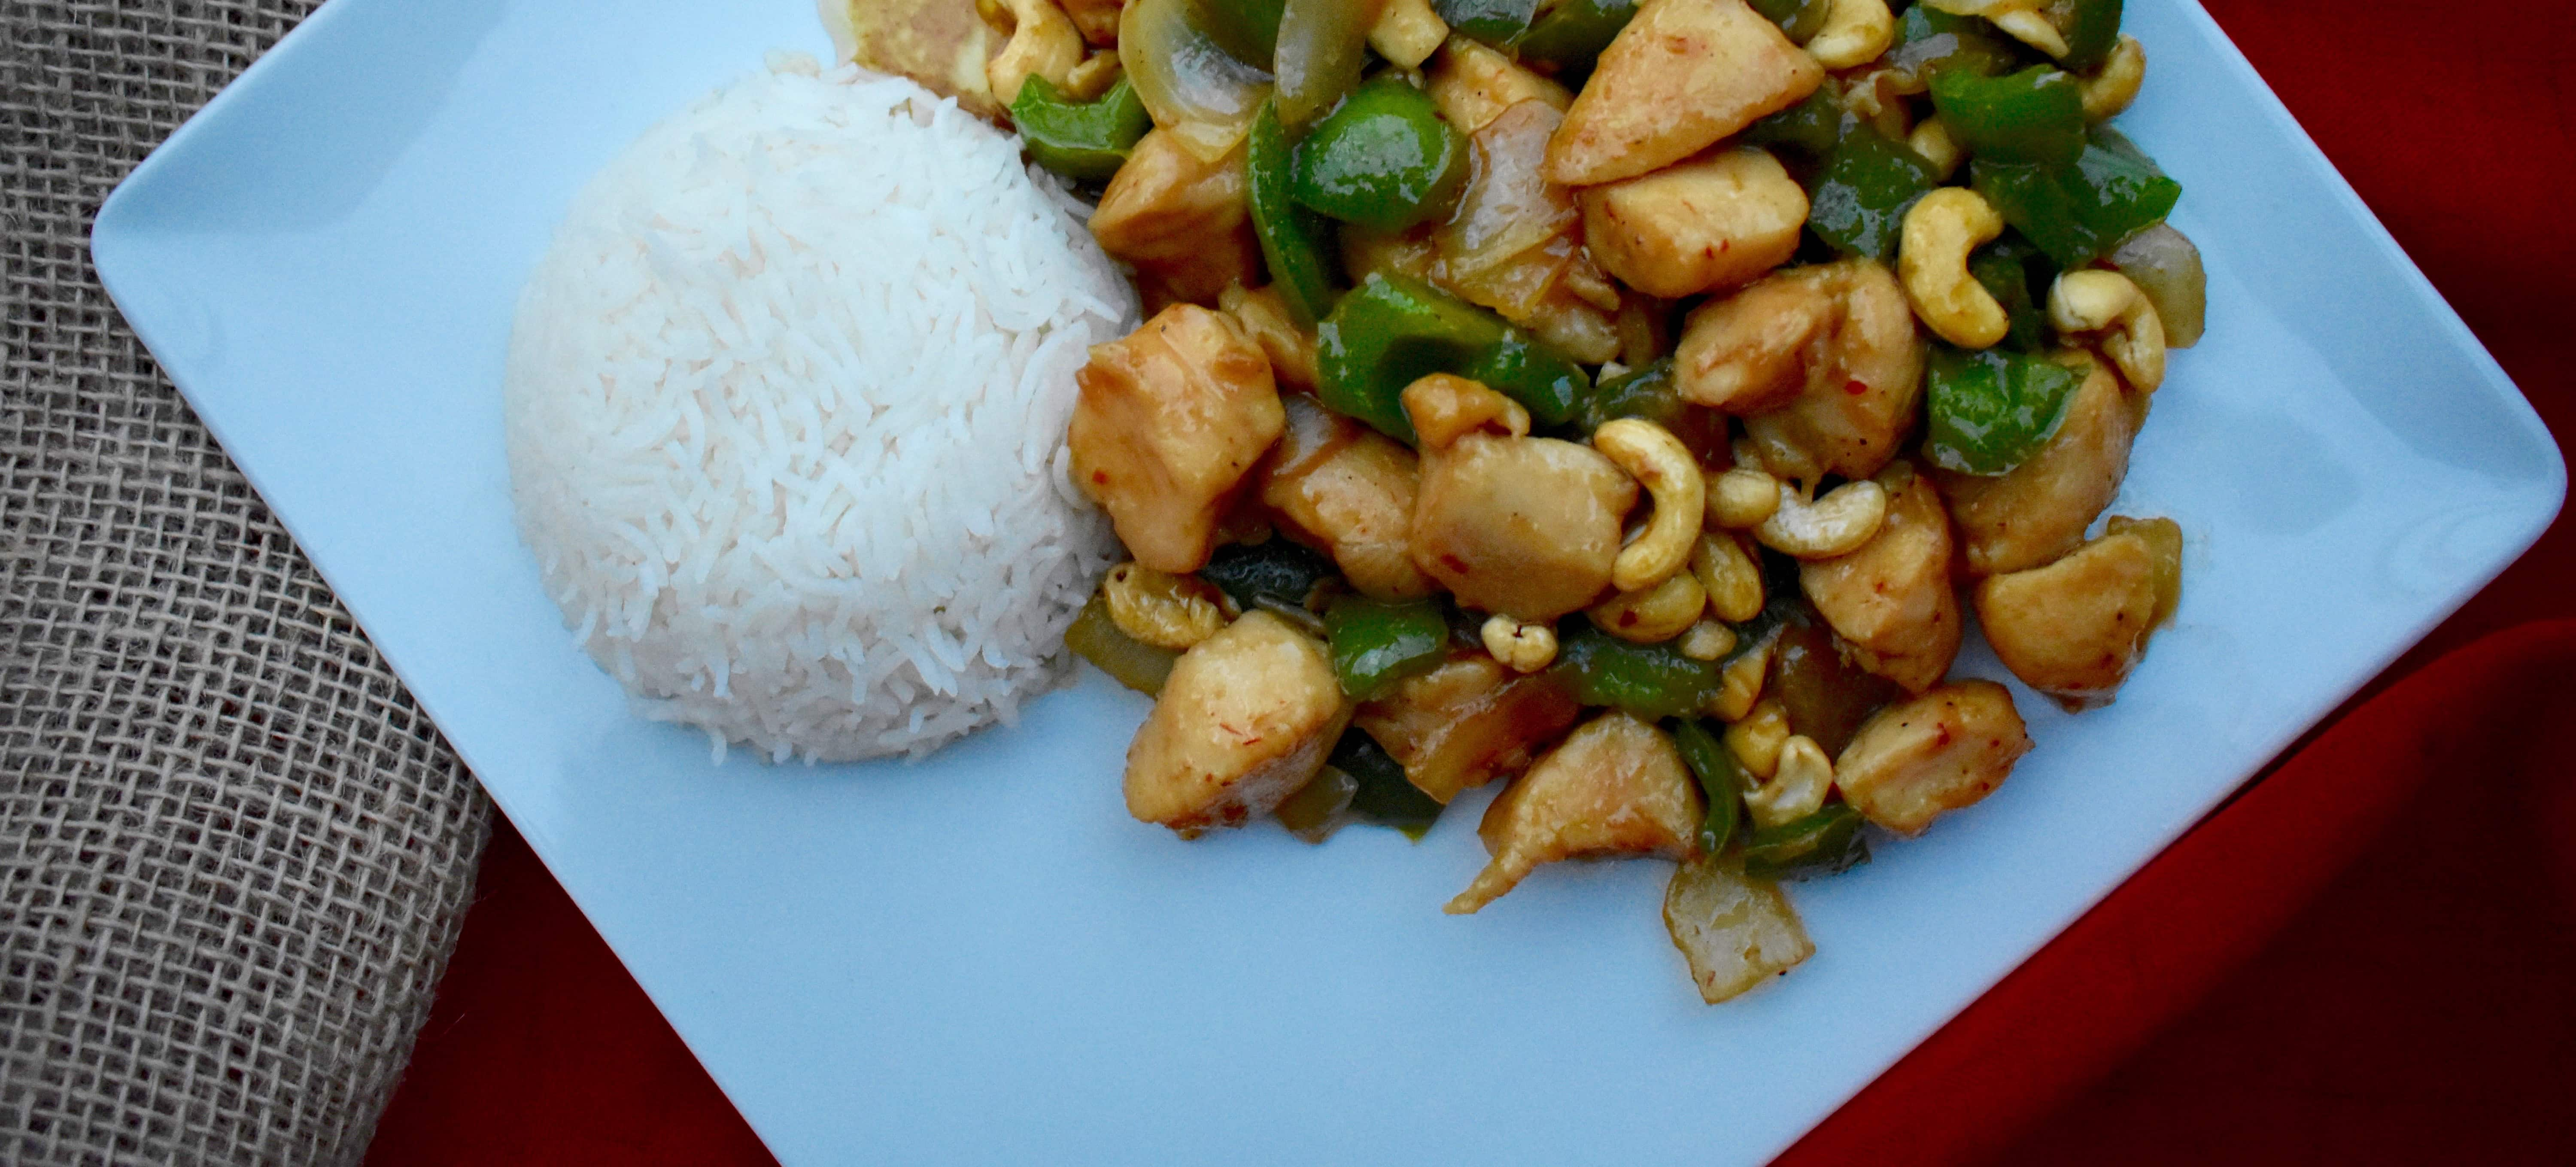 Pakistani -Style Chinese Chicken with Cashews on a white plate with some white rice.